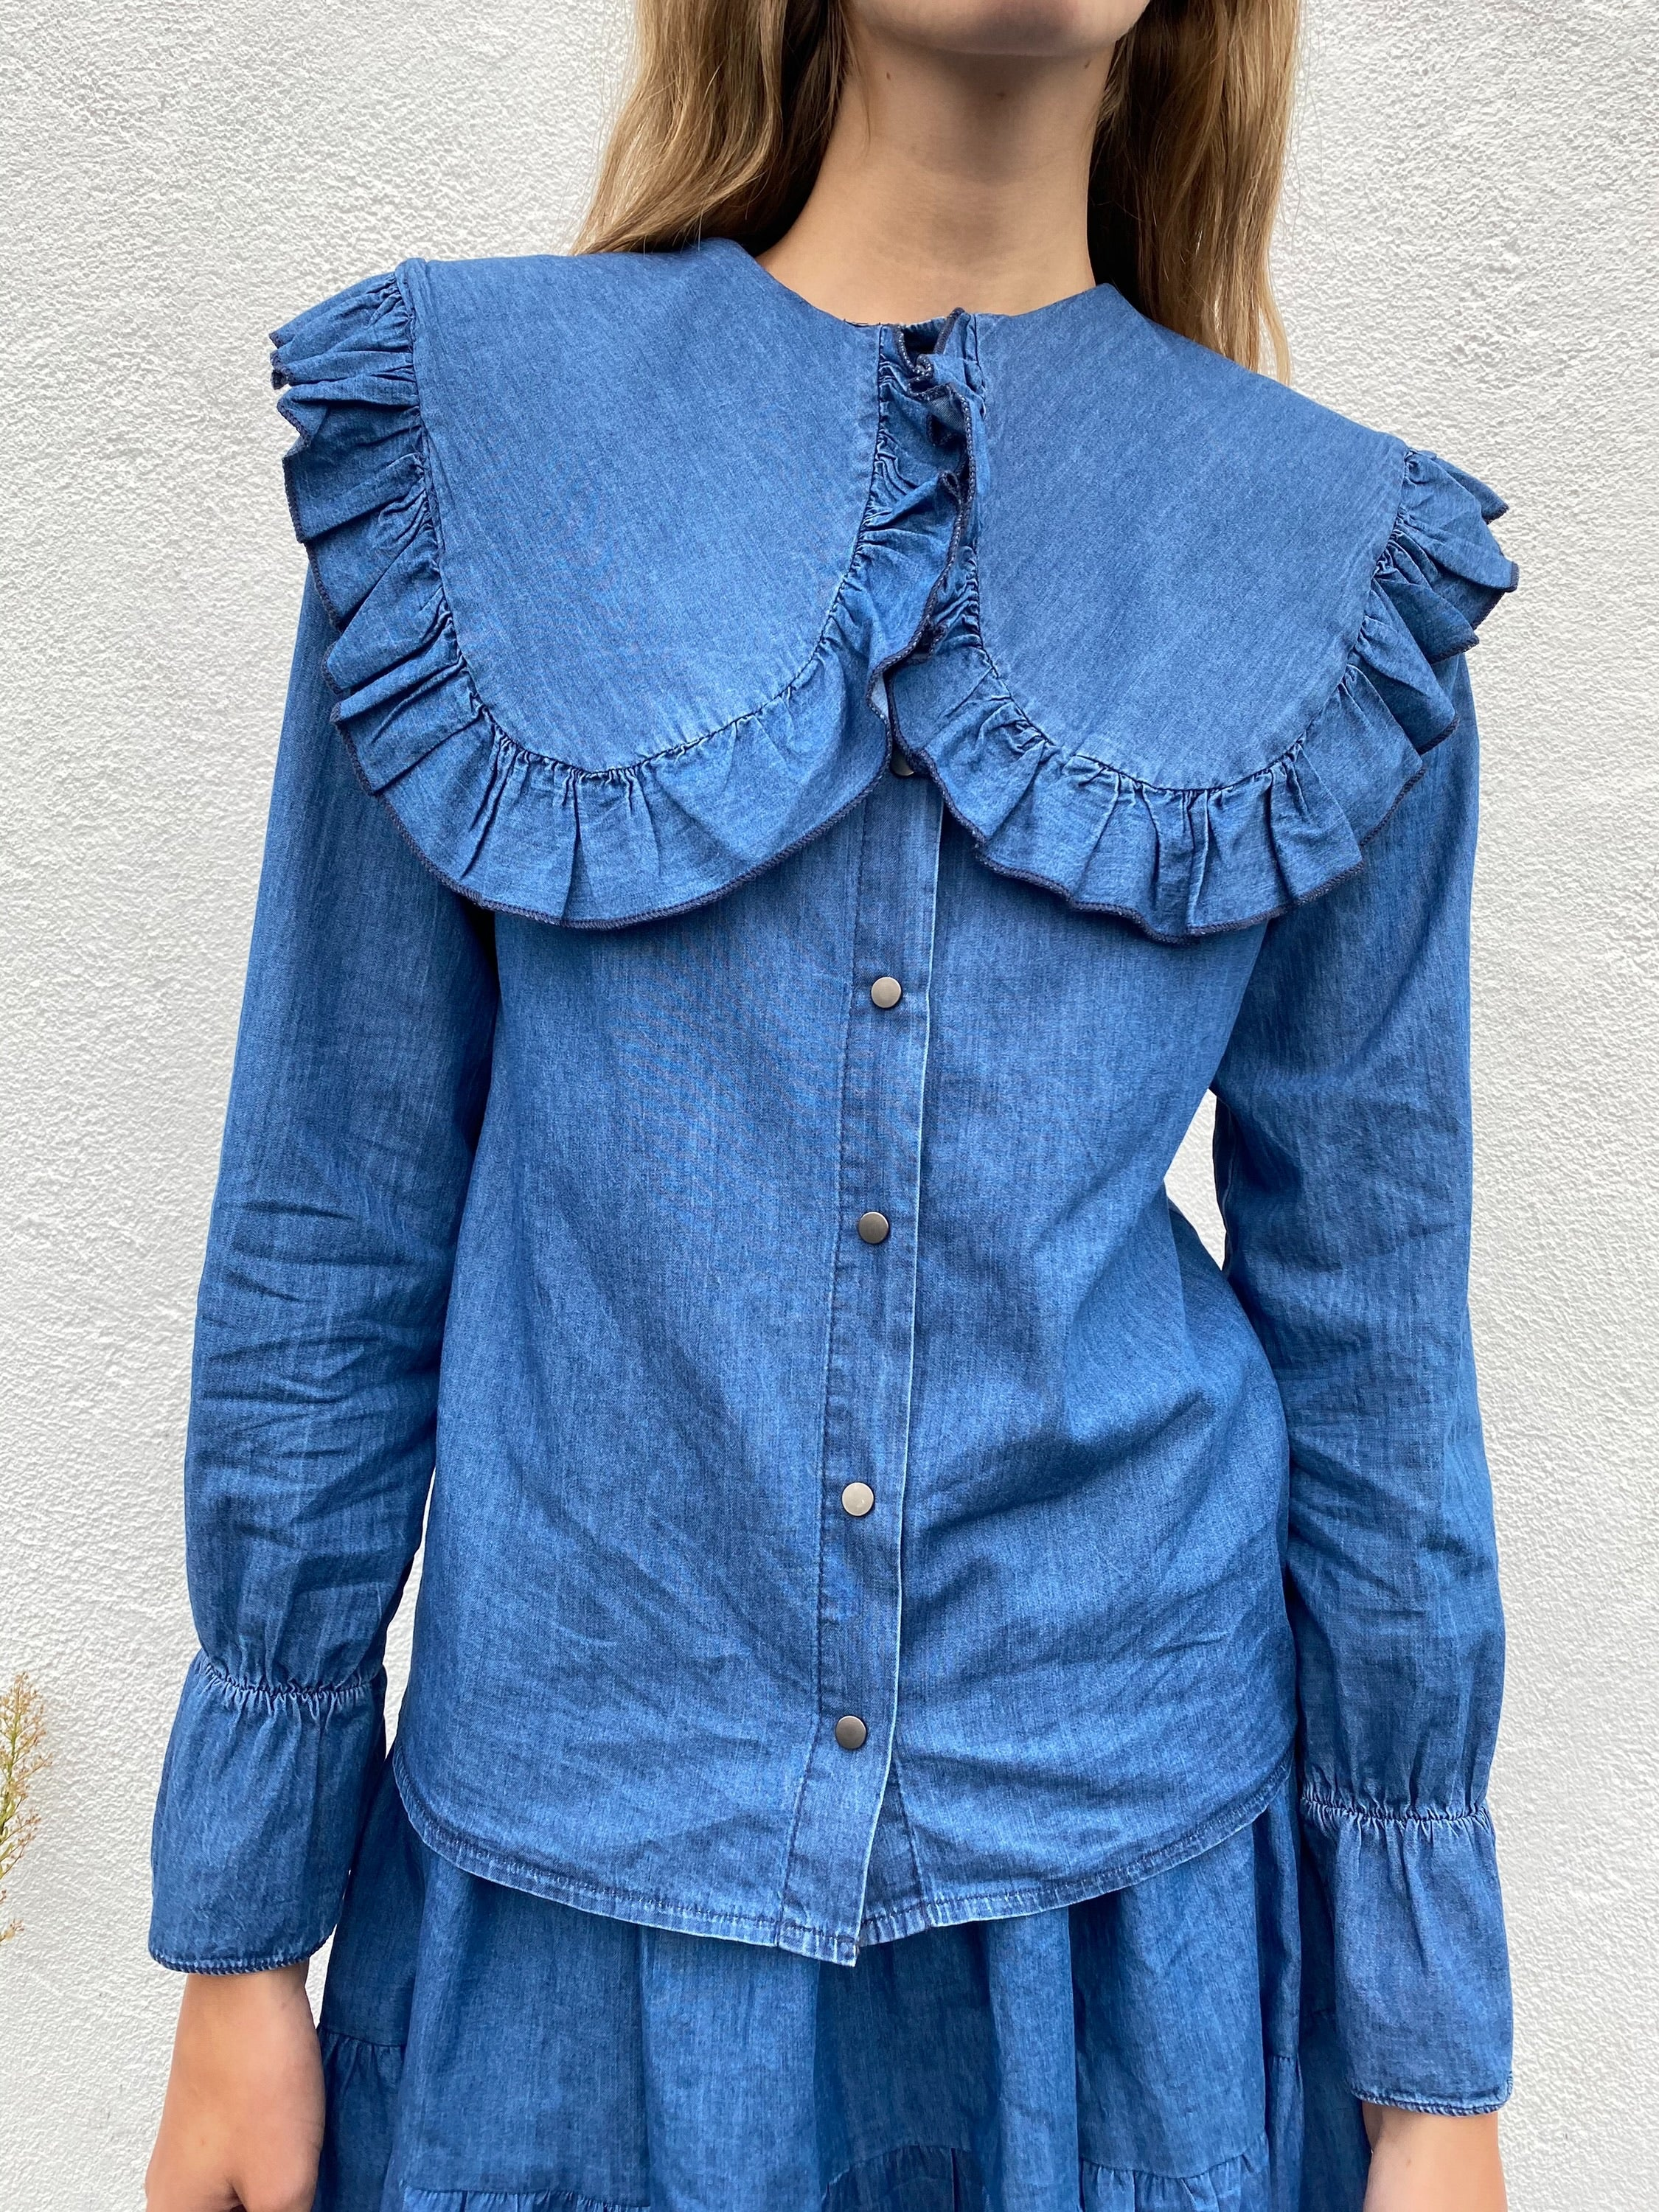 Denim Bohemian Blouse